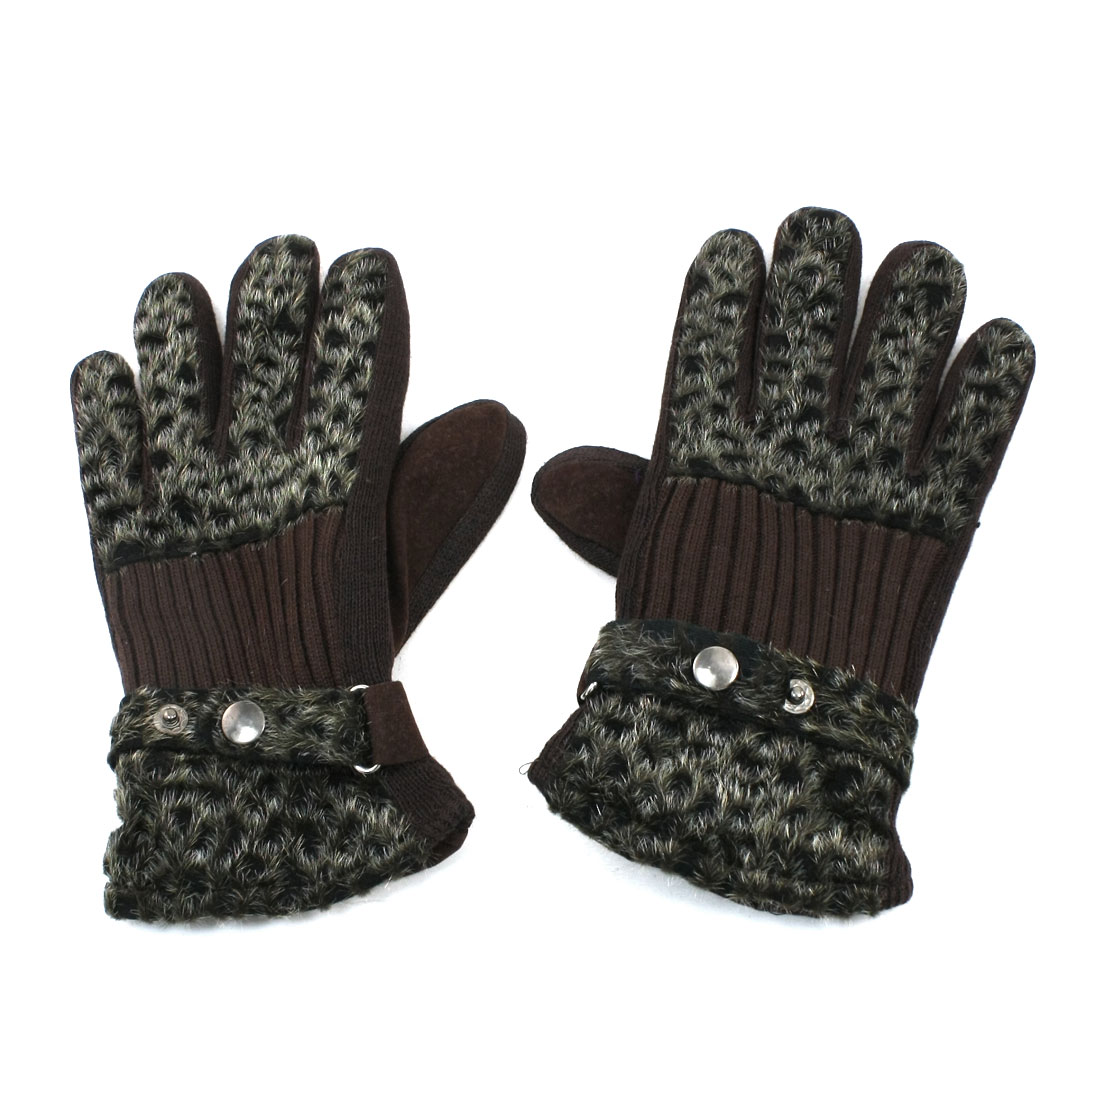 Leopard Printed Fleecy Lined Winter Full Fingers Gloves Coffee Color Unisex